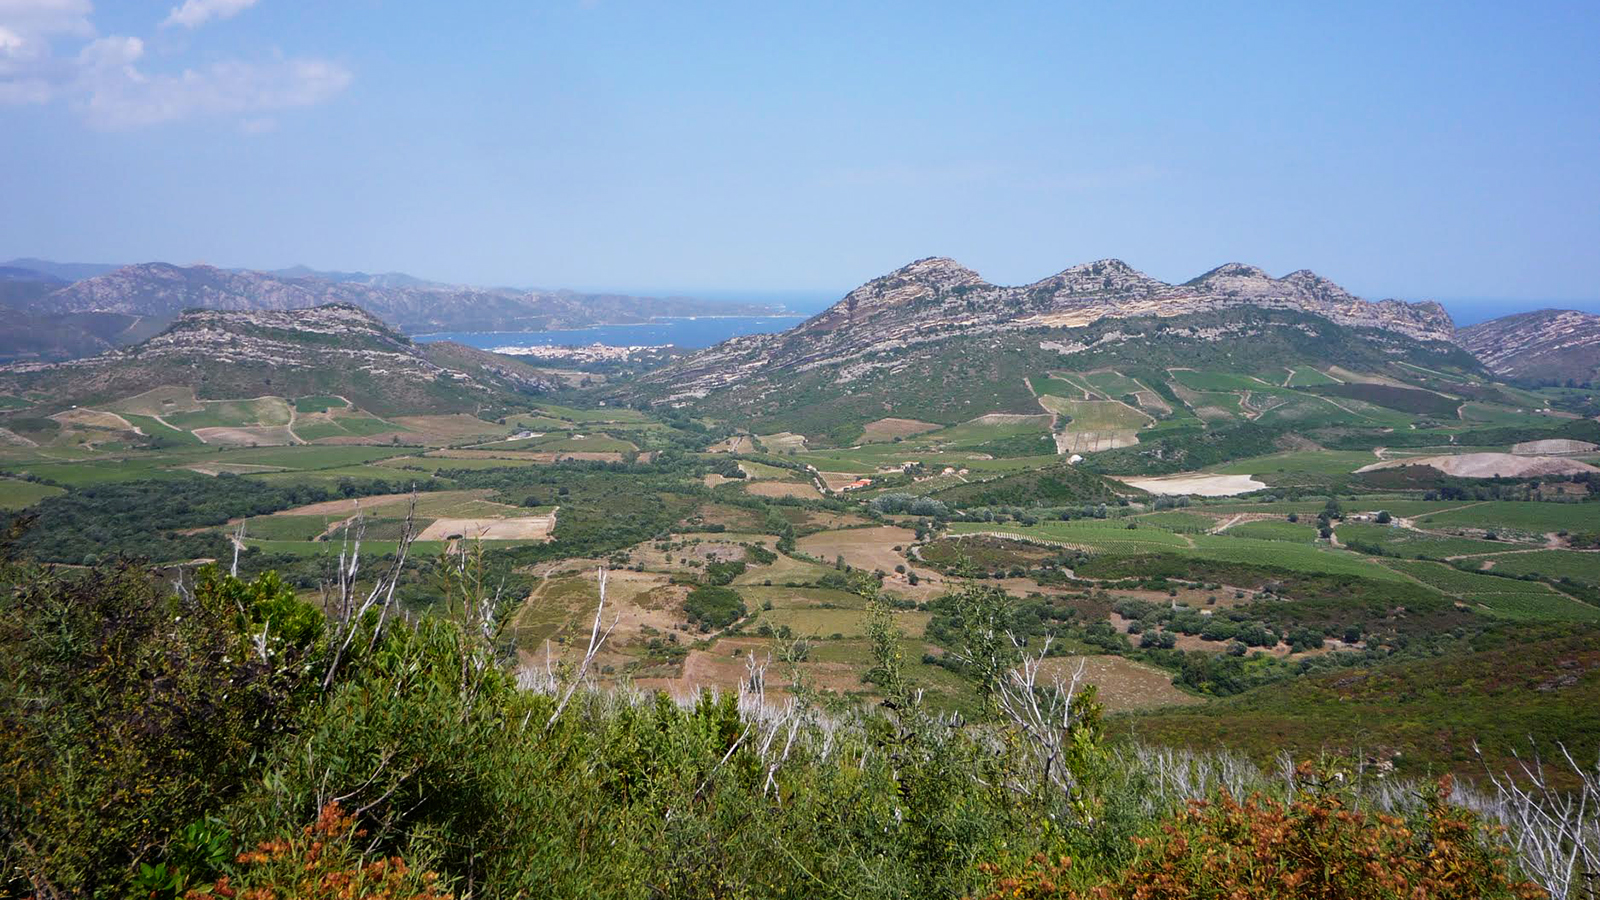 Wine Refrigerator Reviews Wine Spectator 12 lively wines from corsica | tasting highlights | news